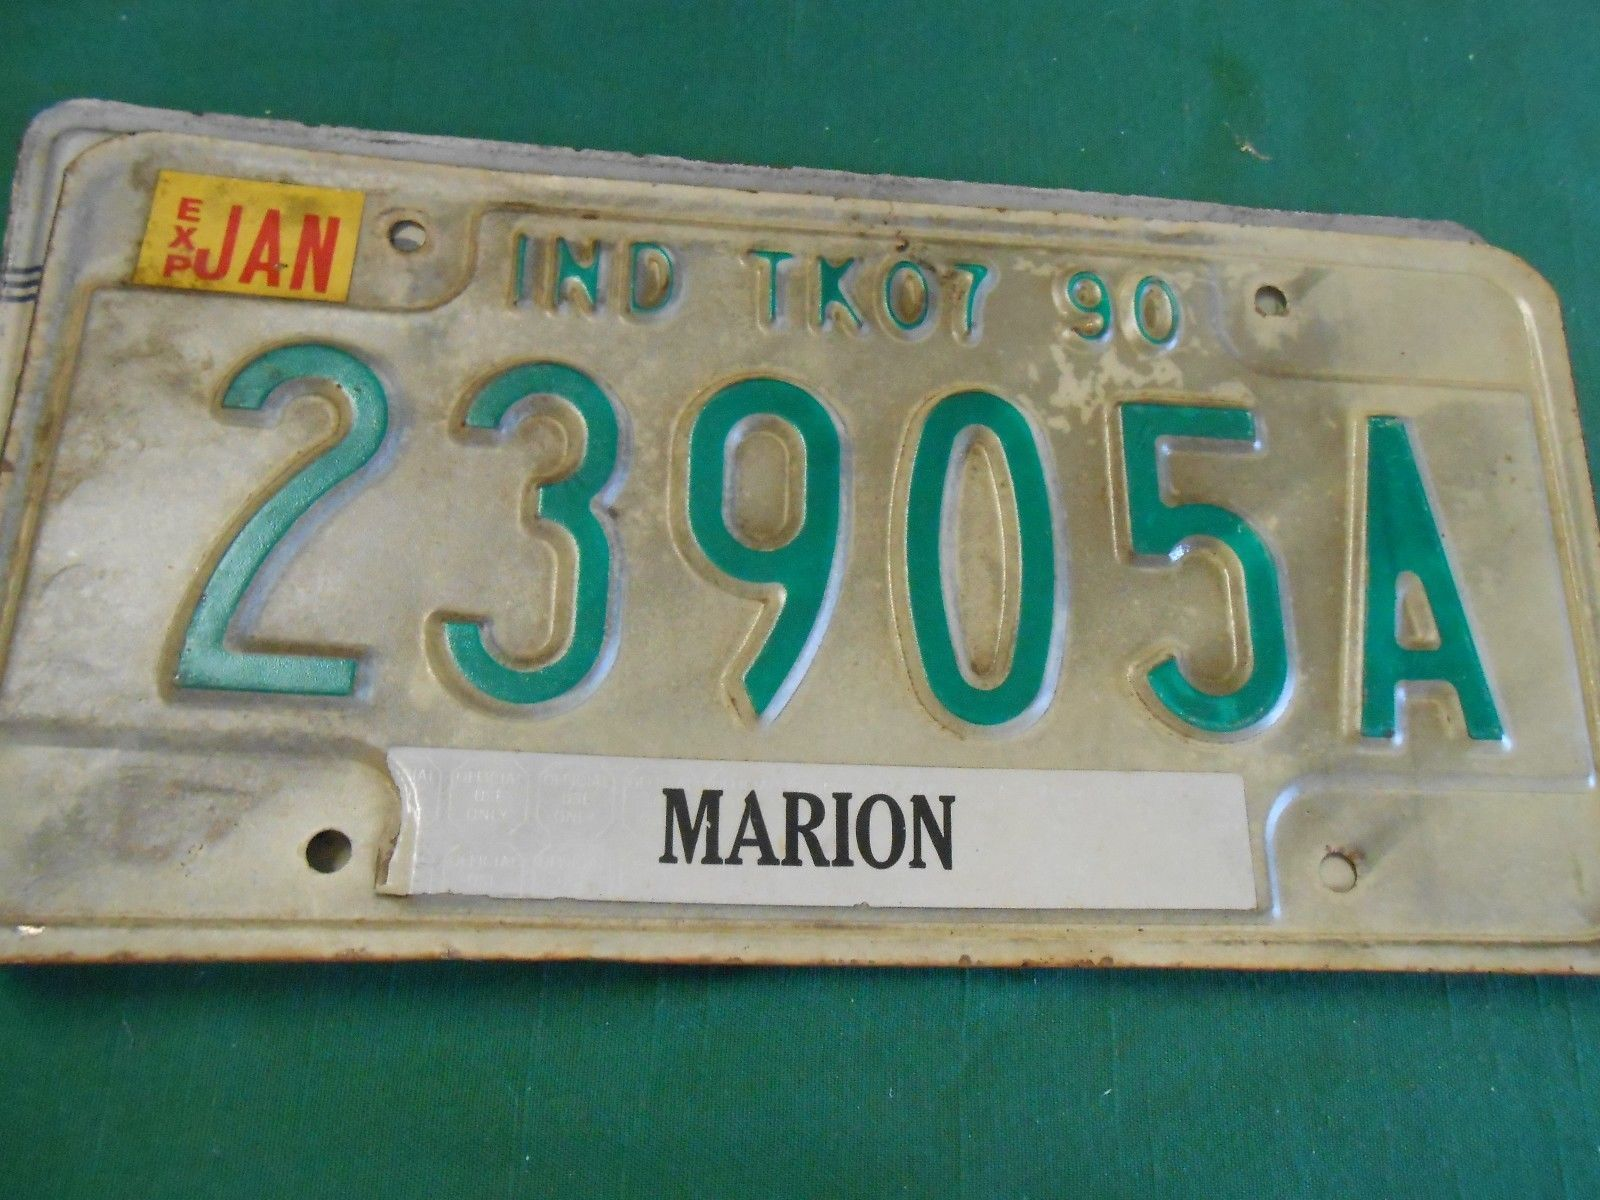 Collectible License Plate Tag......INDIANA TK07 90 Madison 23905A